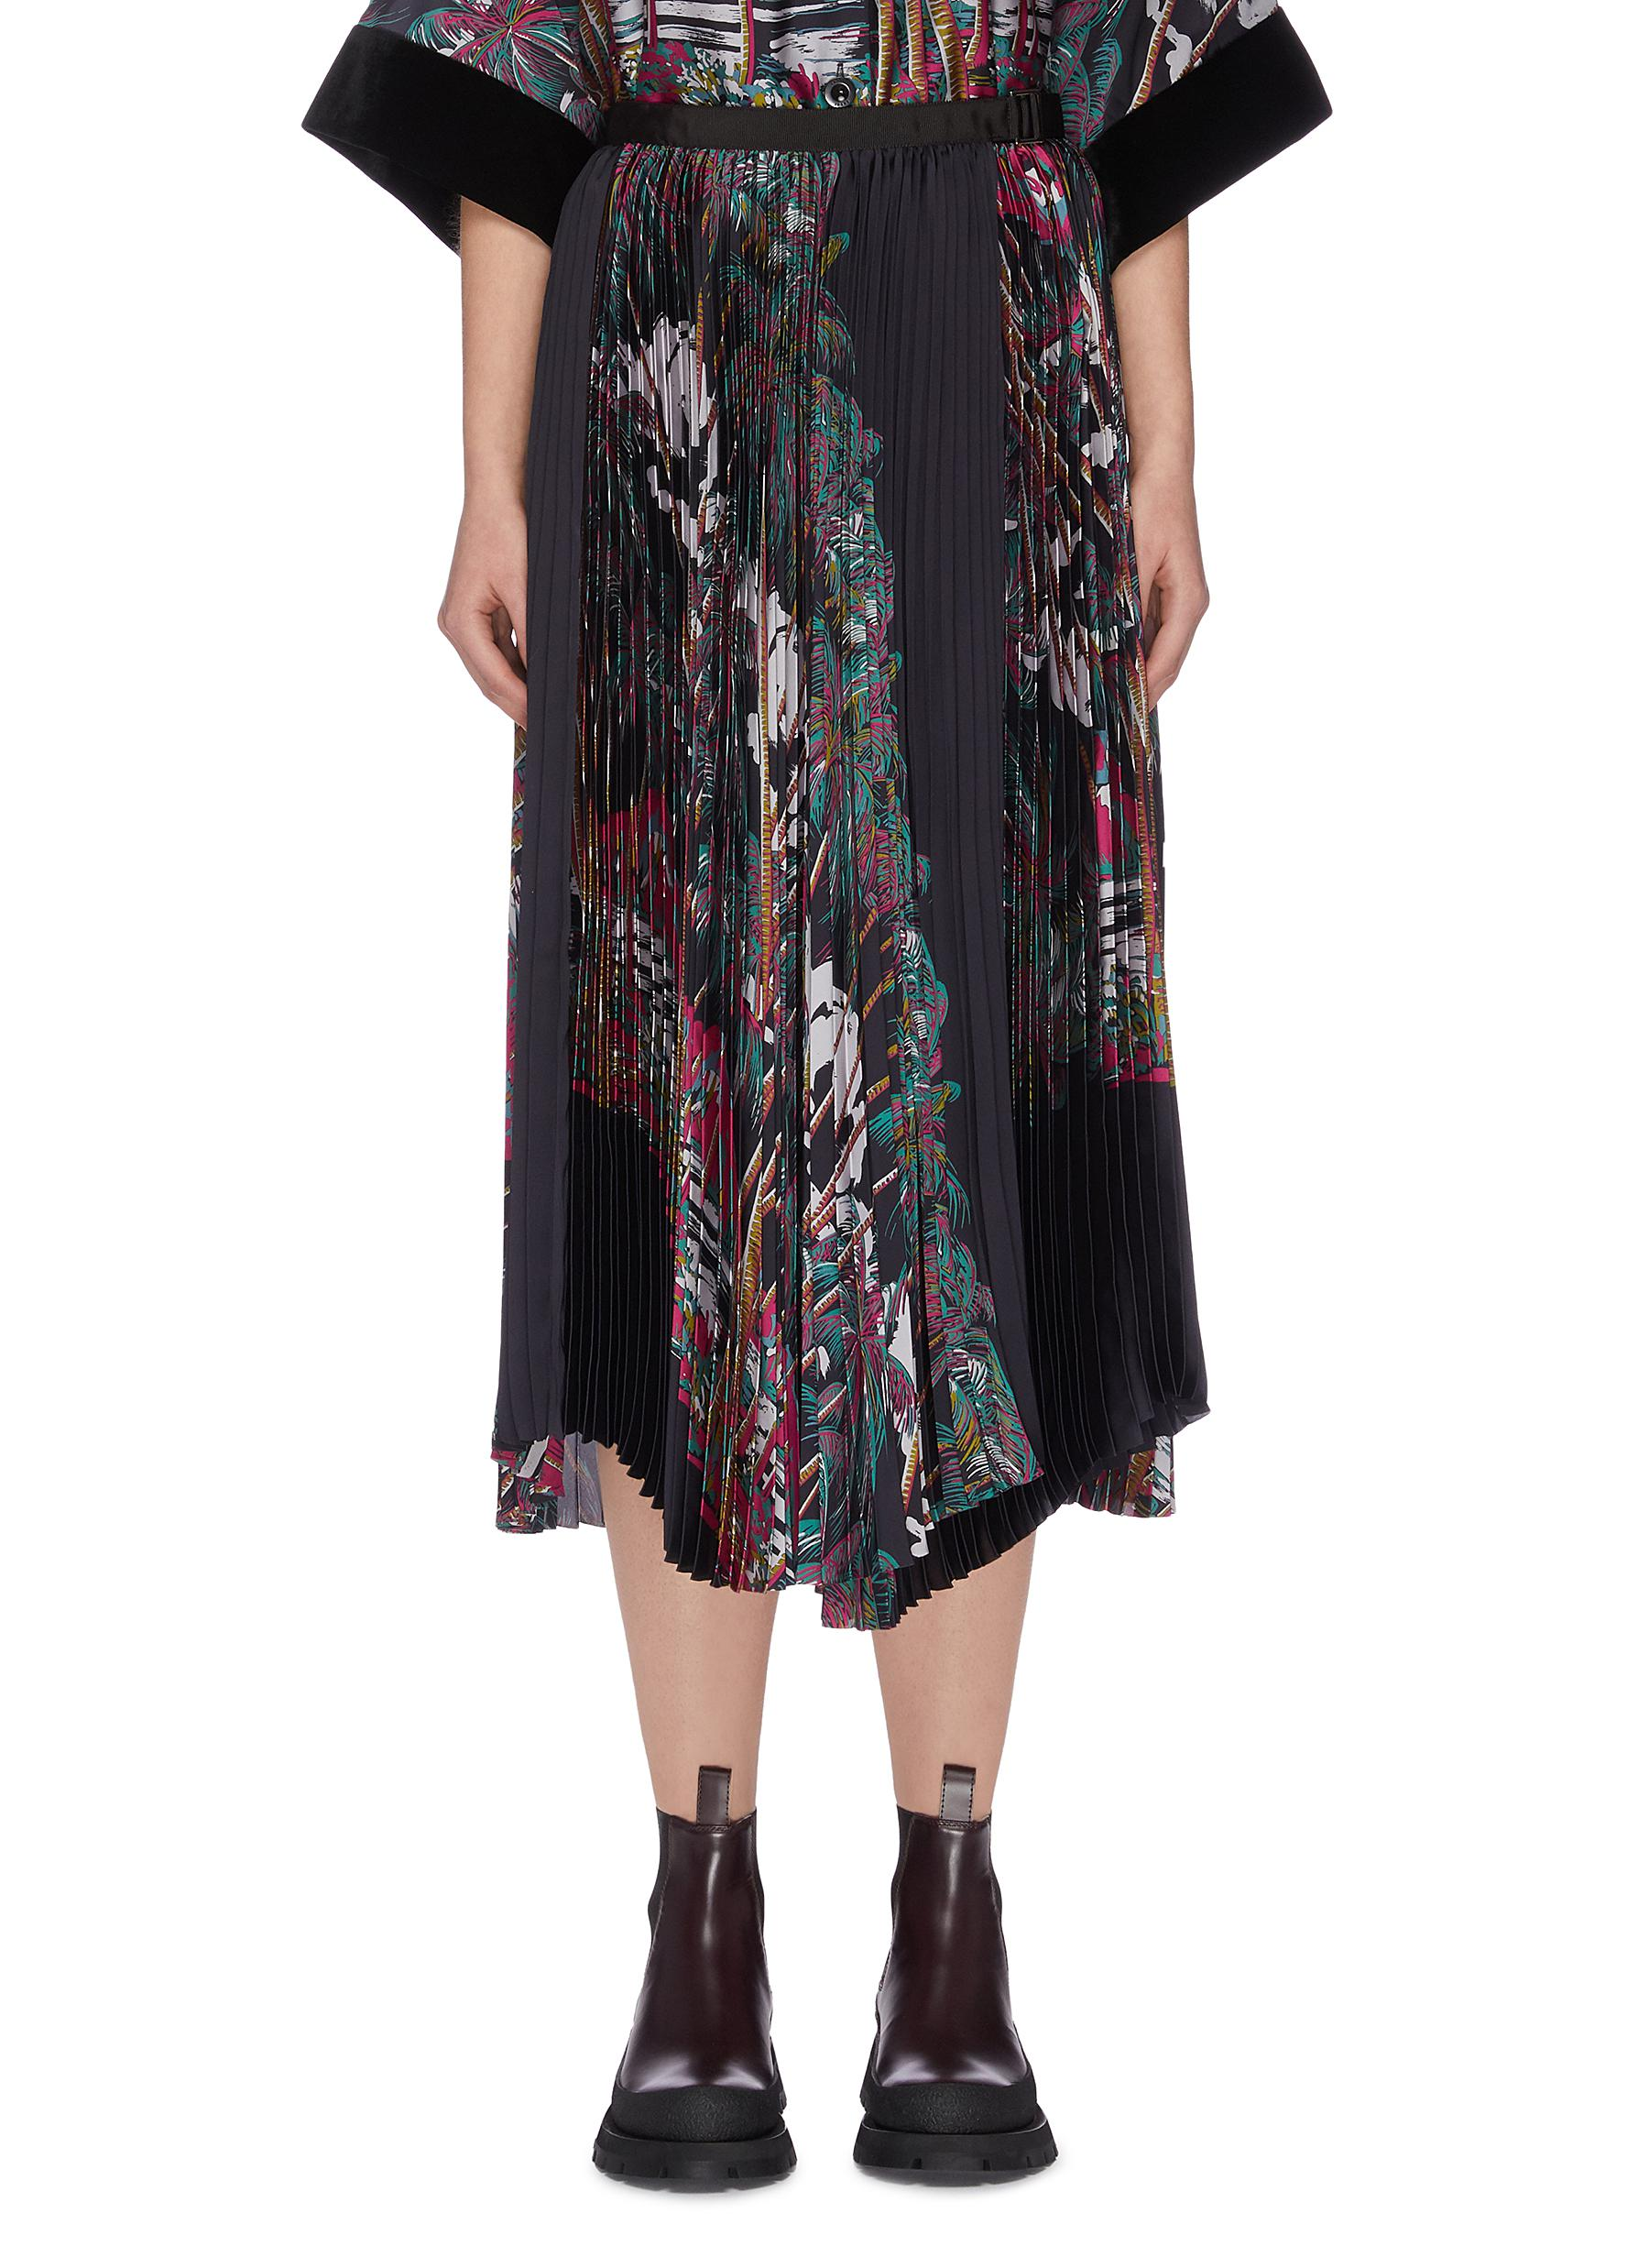 Buy Sacai Skirts 'Jungle' graphic print pleated patchwork skirt